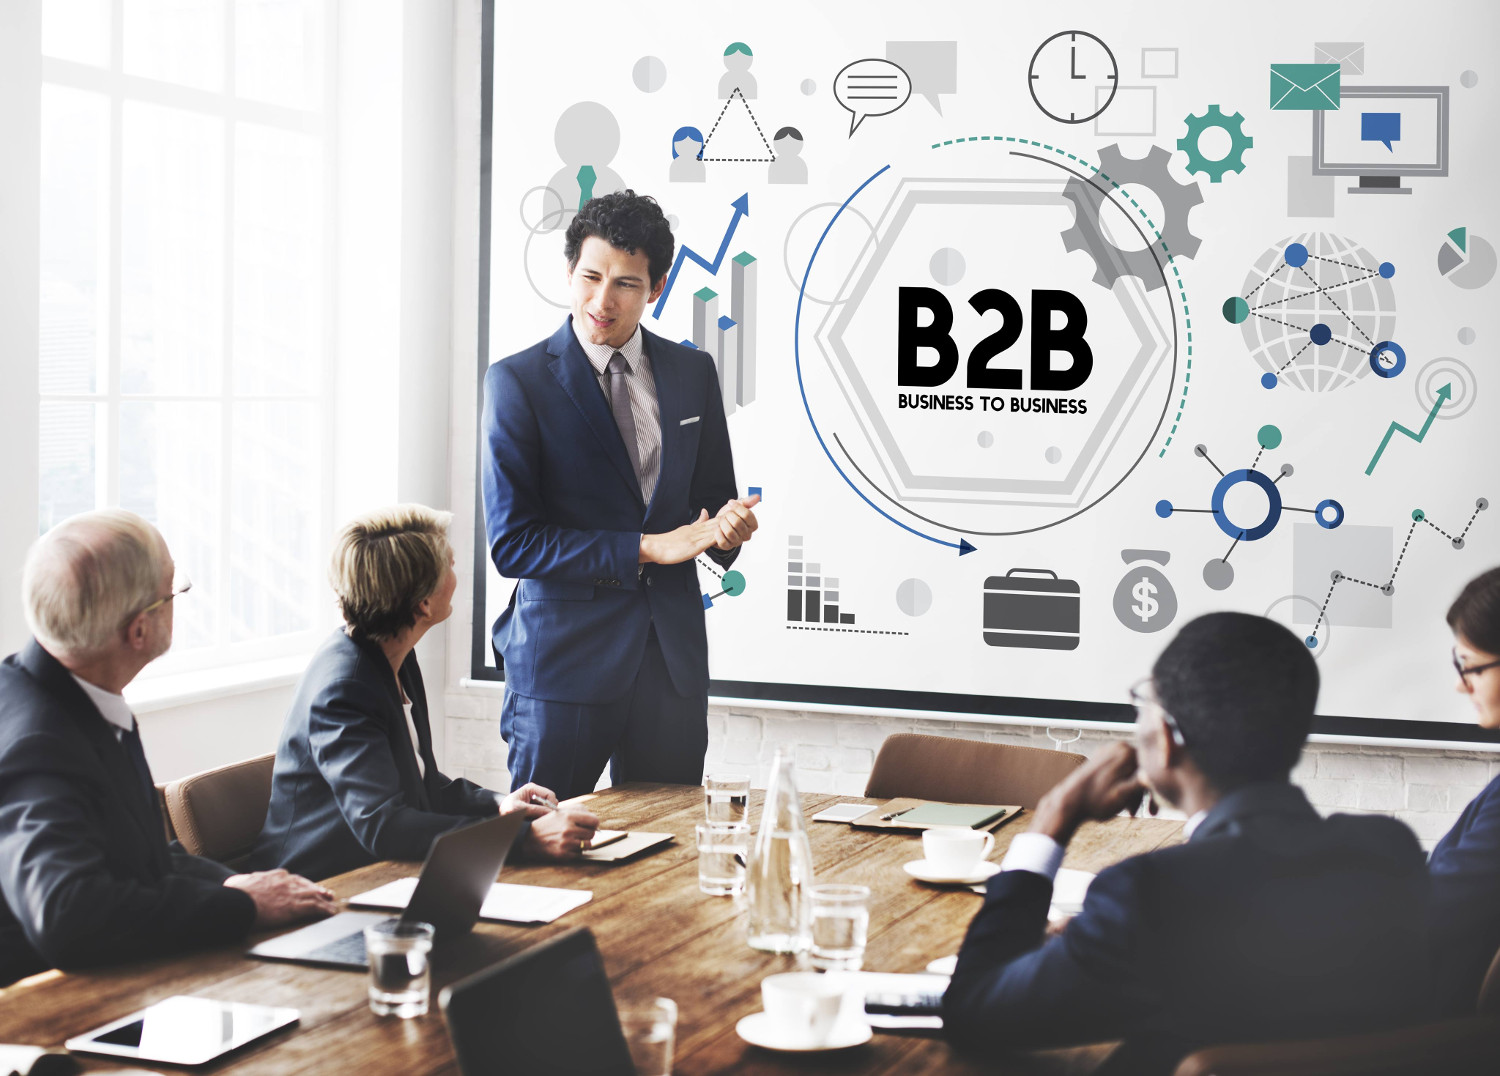 campagne di digital marketing B2B